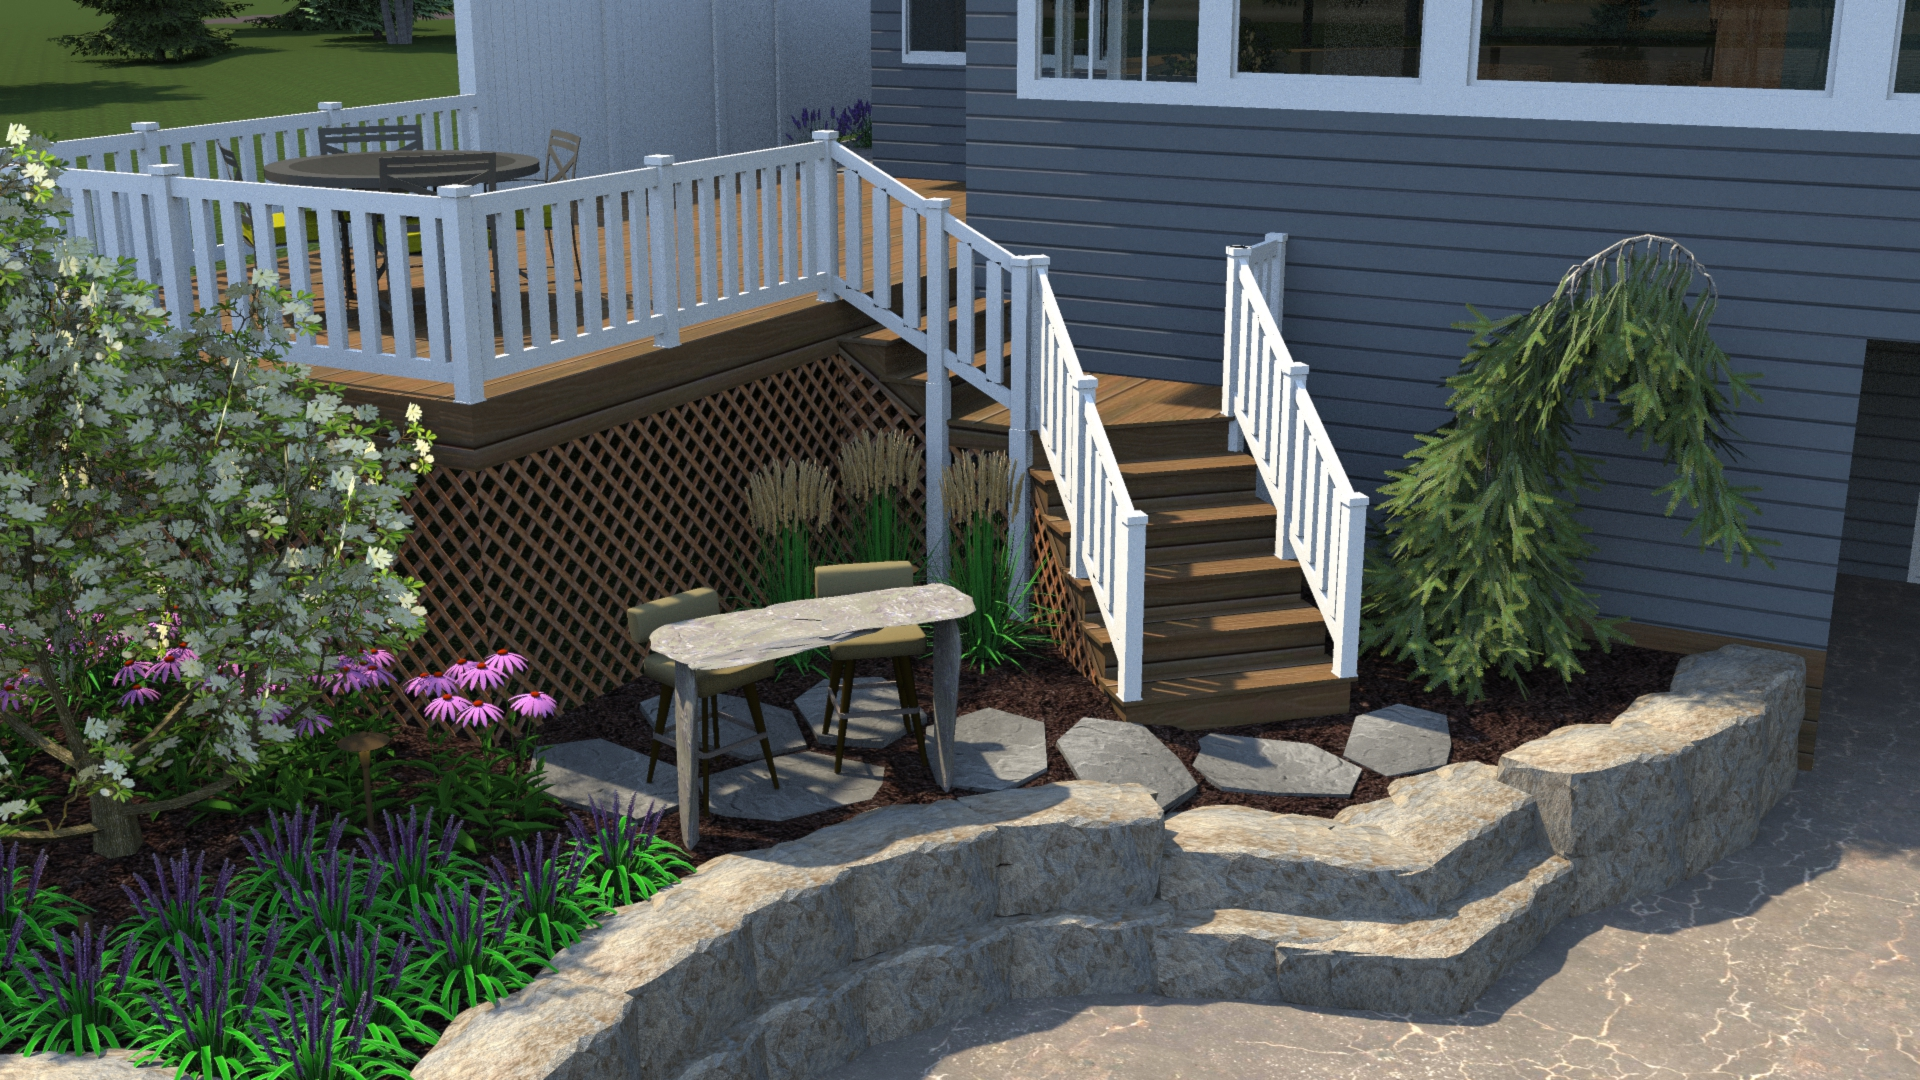 Richland Landscaping Patio Fire Pit Deck Retaining Wall Steps Pine Lake 2